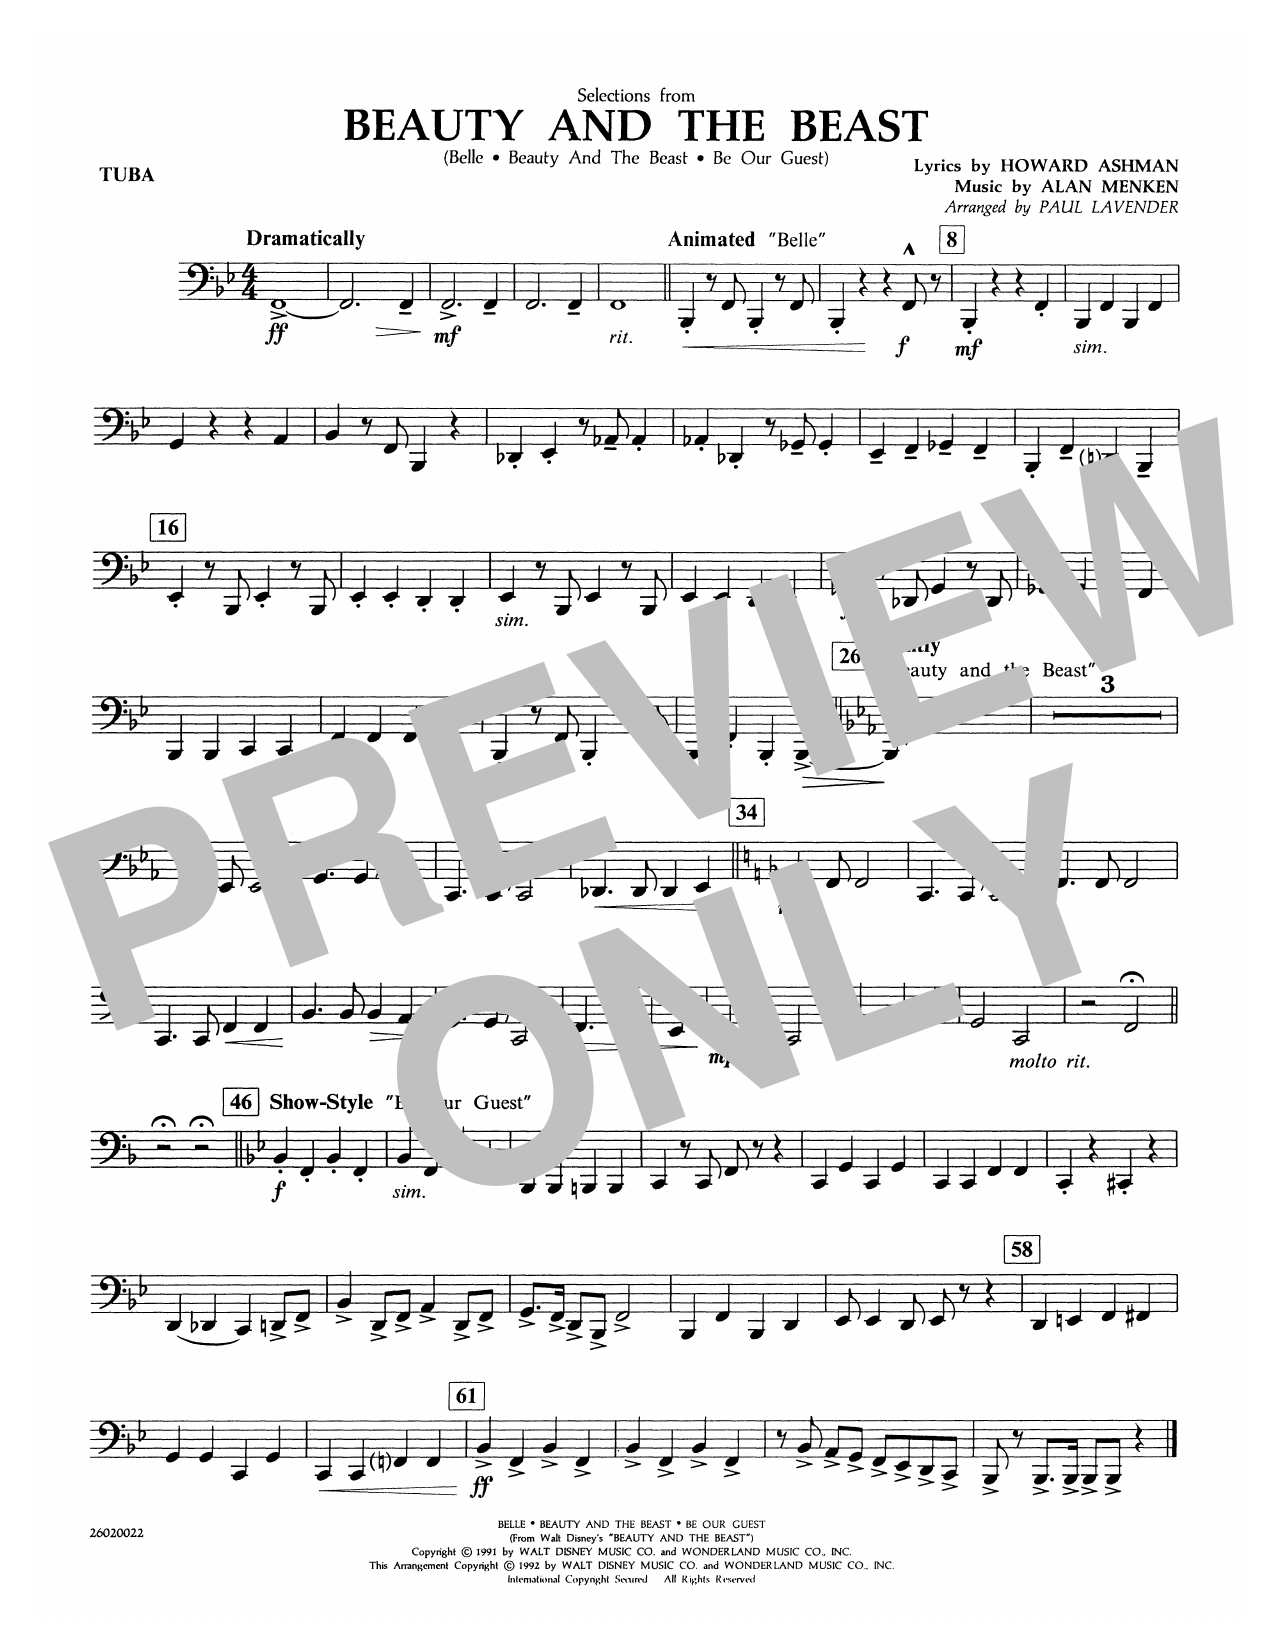 Selections from Beauty and the Beast - Tuba Sheet Music